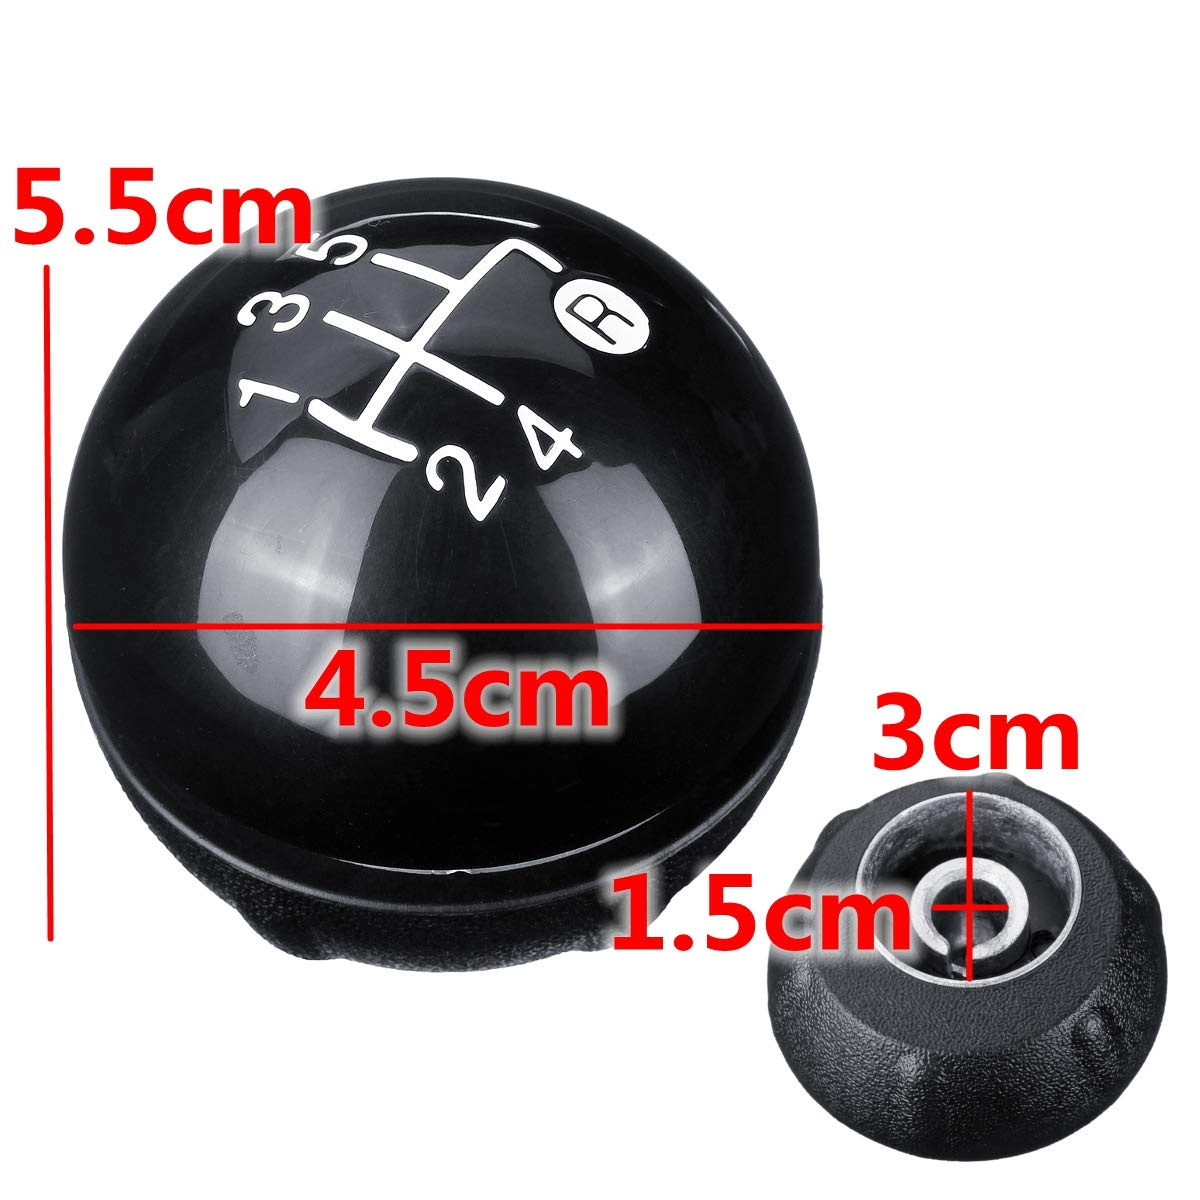 YONGYAO 5 Speed Black Gear Shift Knob Kit For Fiat 500 500c 2012-2013